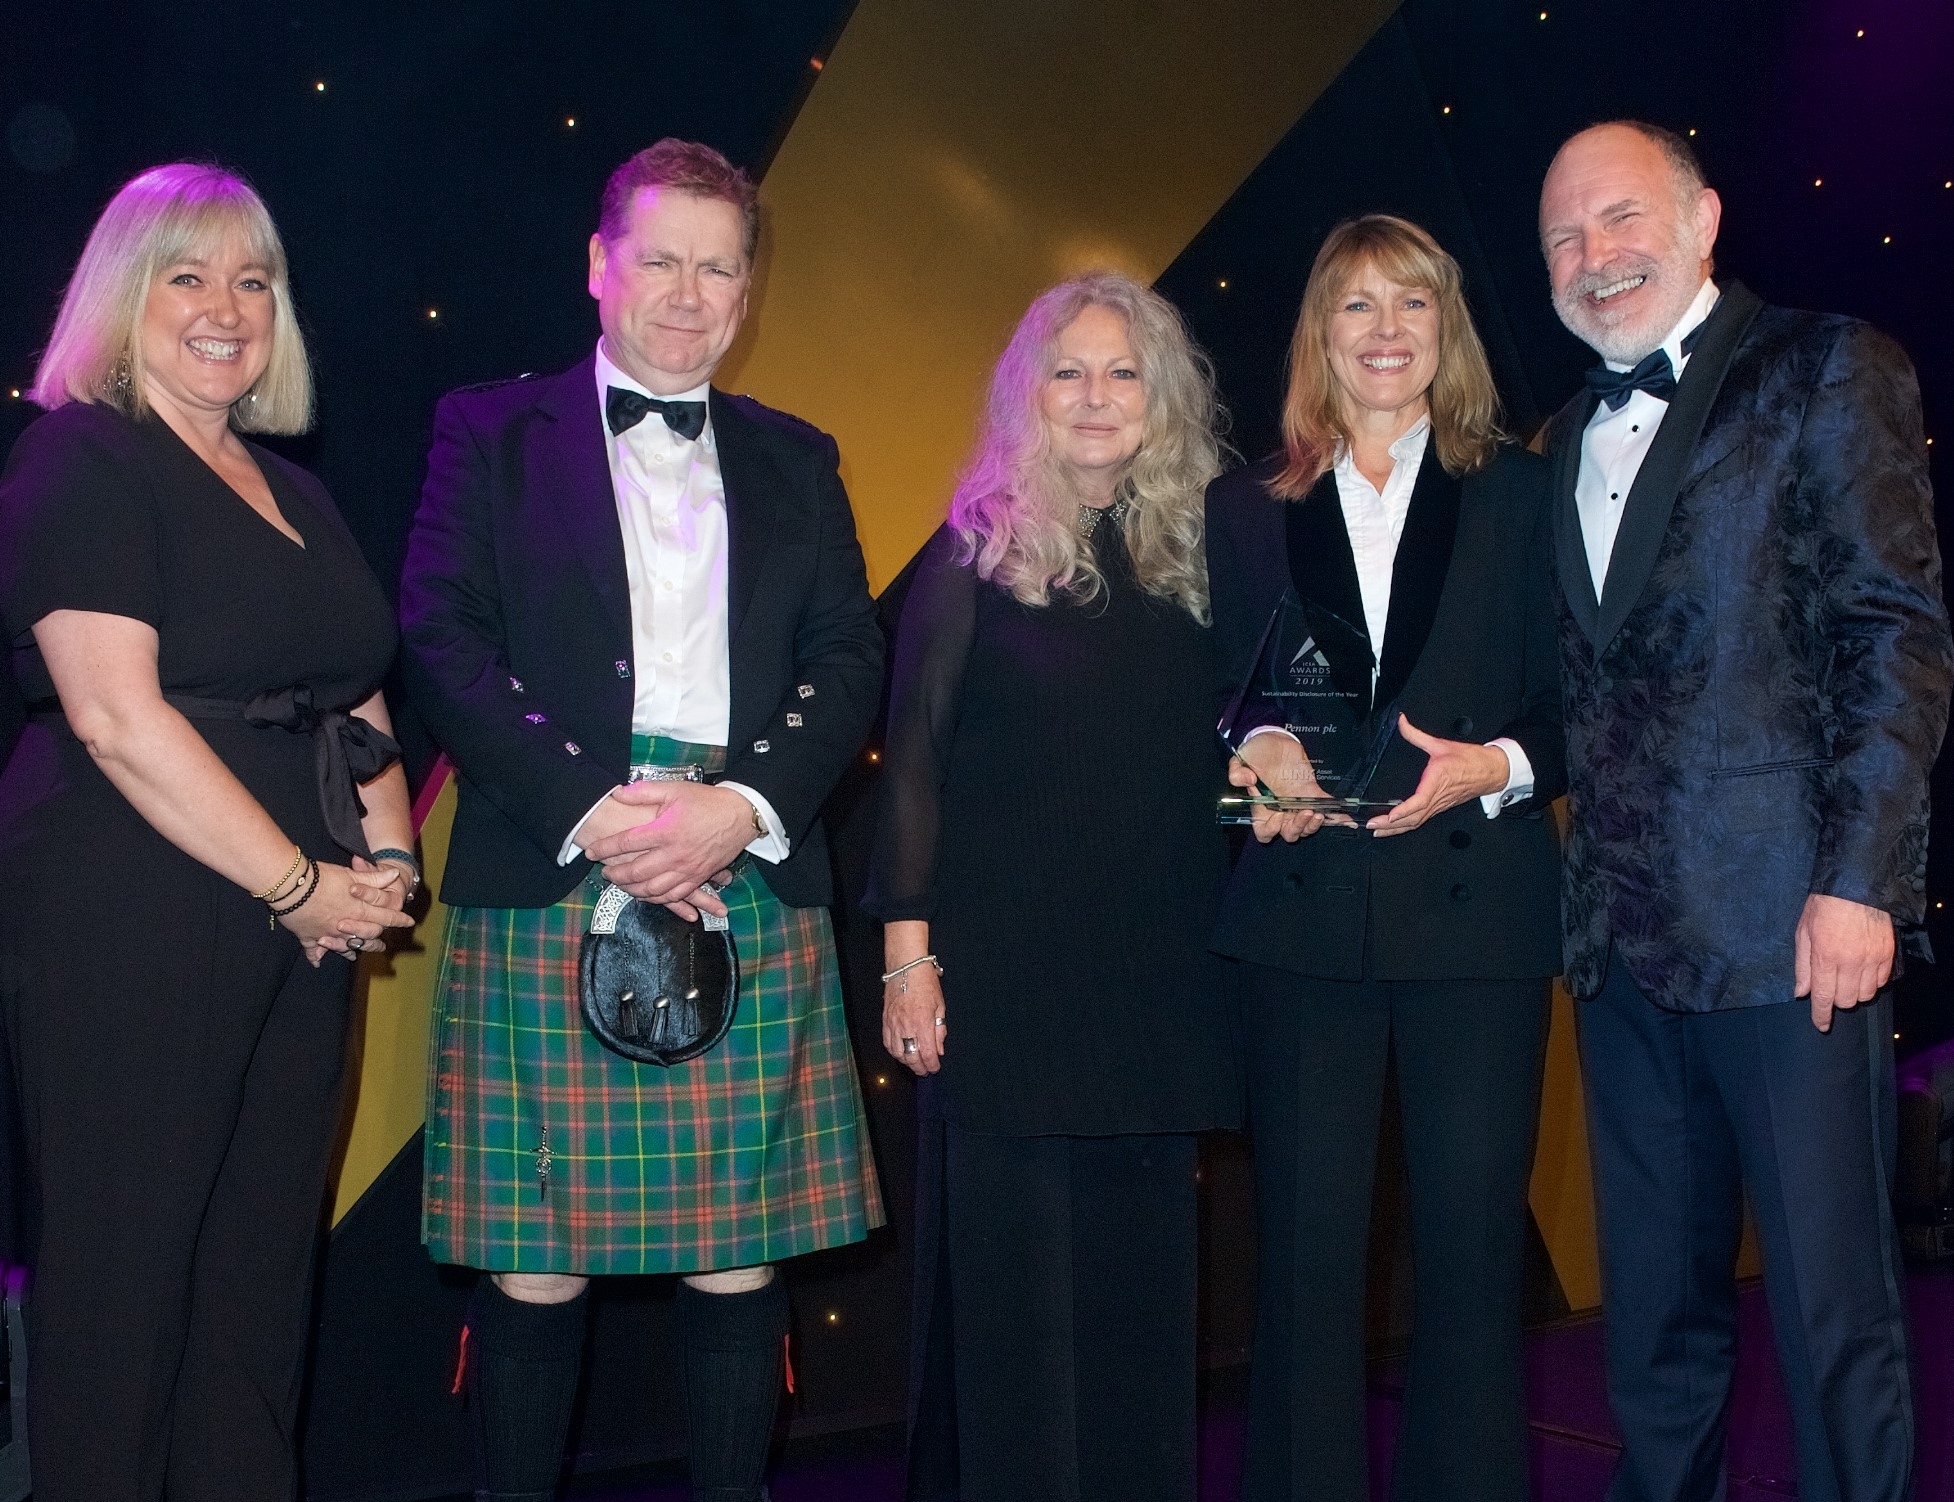 ICSA Awards - Sustainability Report of the Year